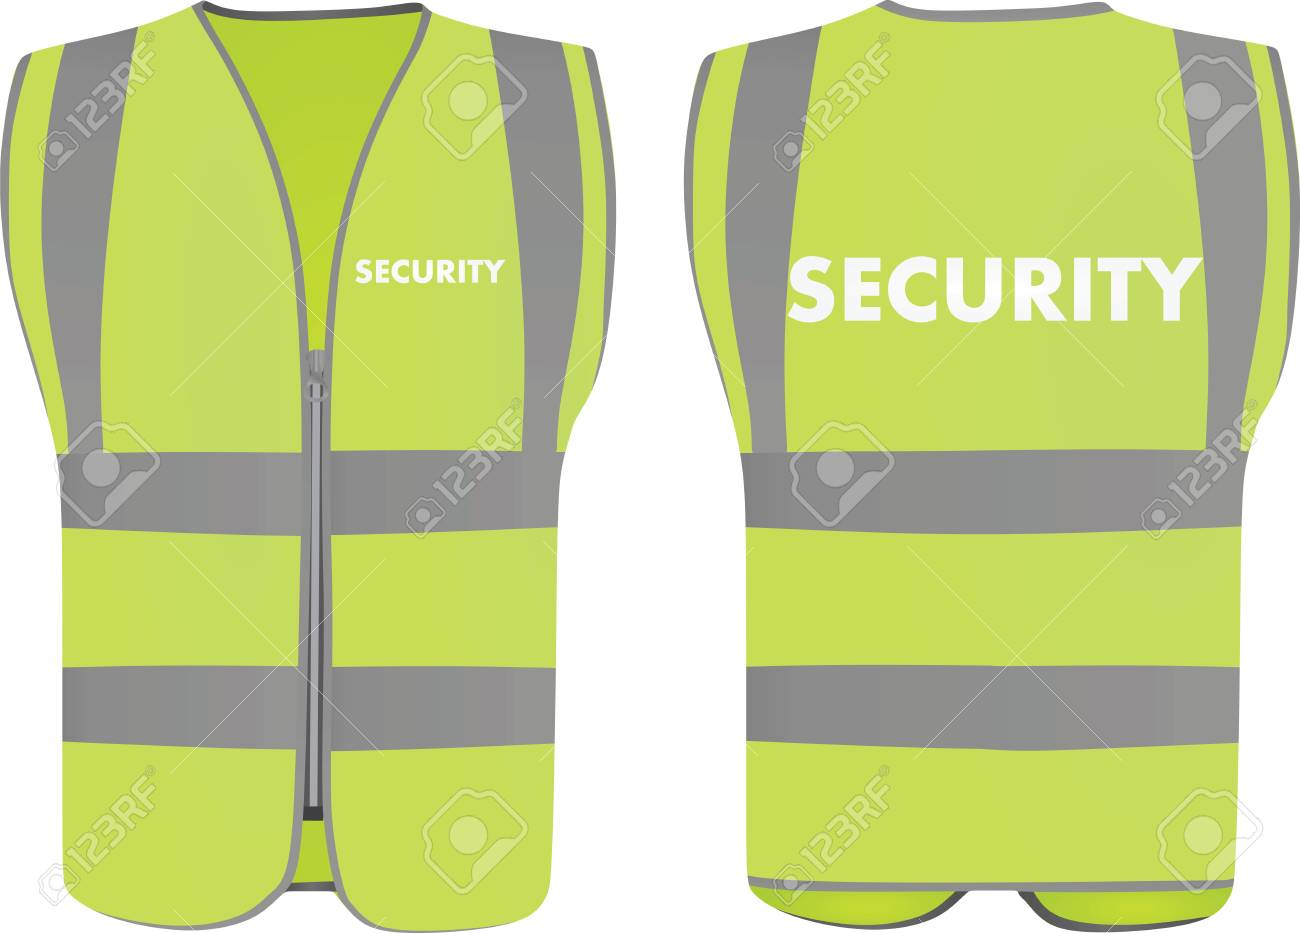 Security safety vest Stock Vector - 95150646 b08ebaacdc9